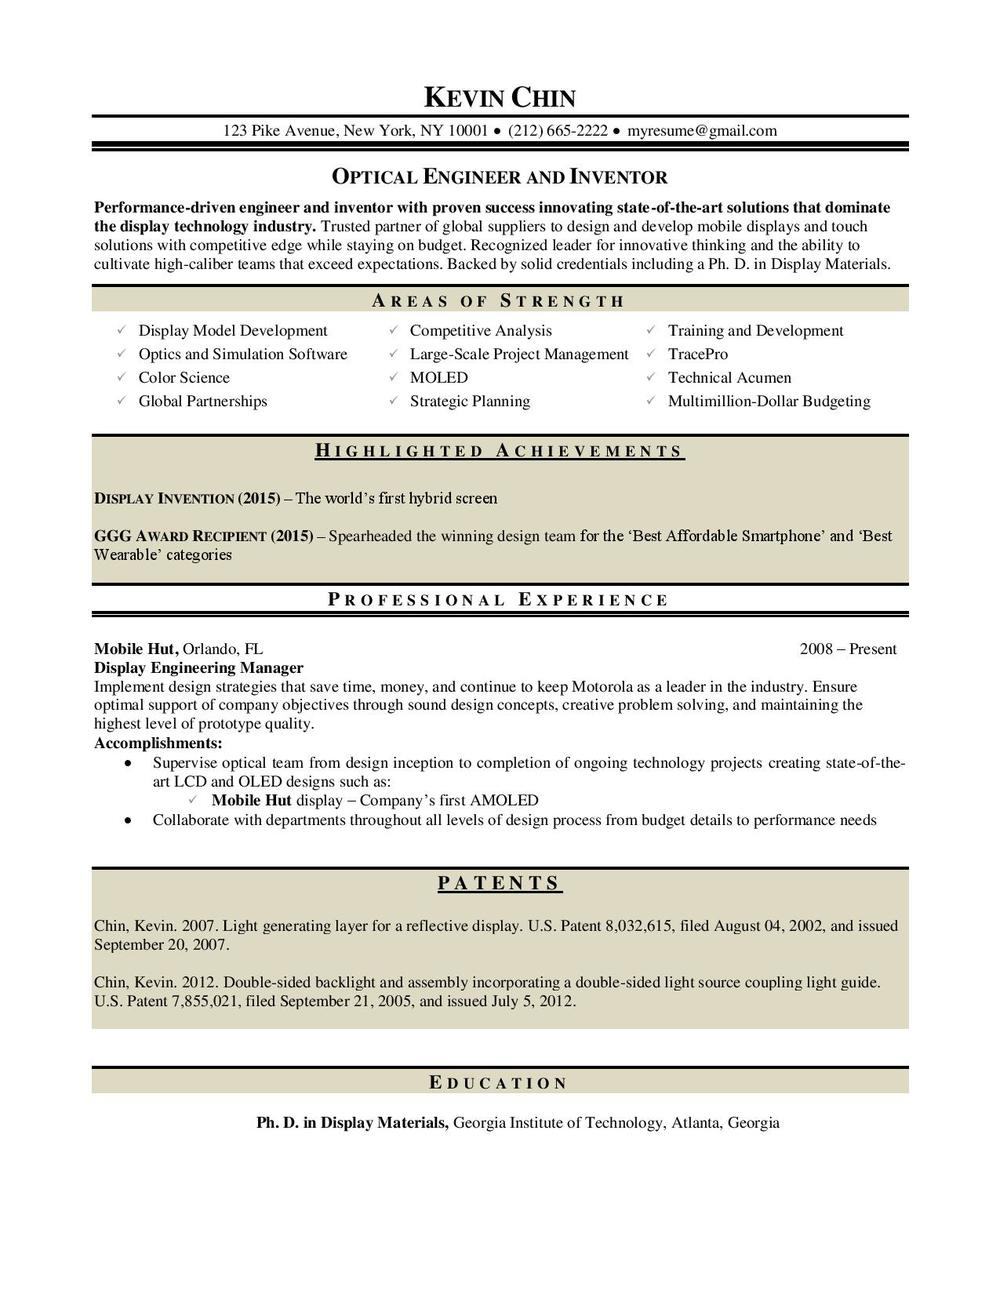 resume newbie certified professional resume writing services certified professional resume writer - Certified Writer Resume